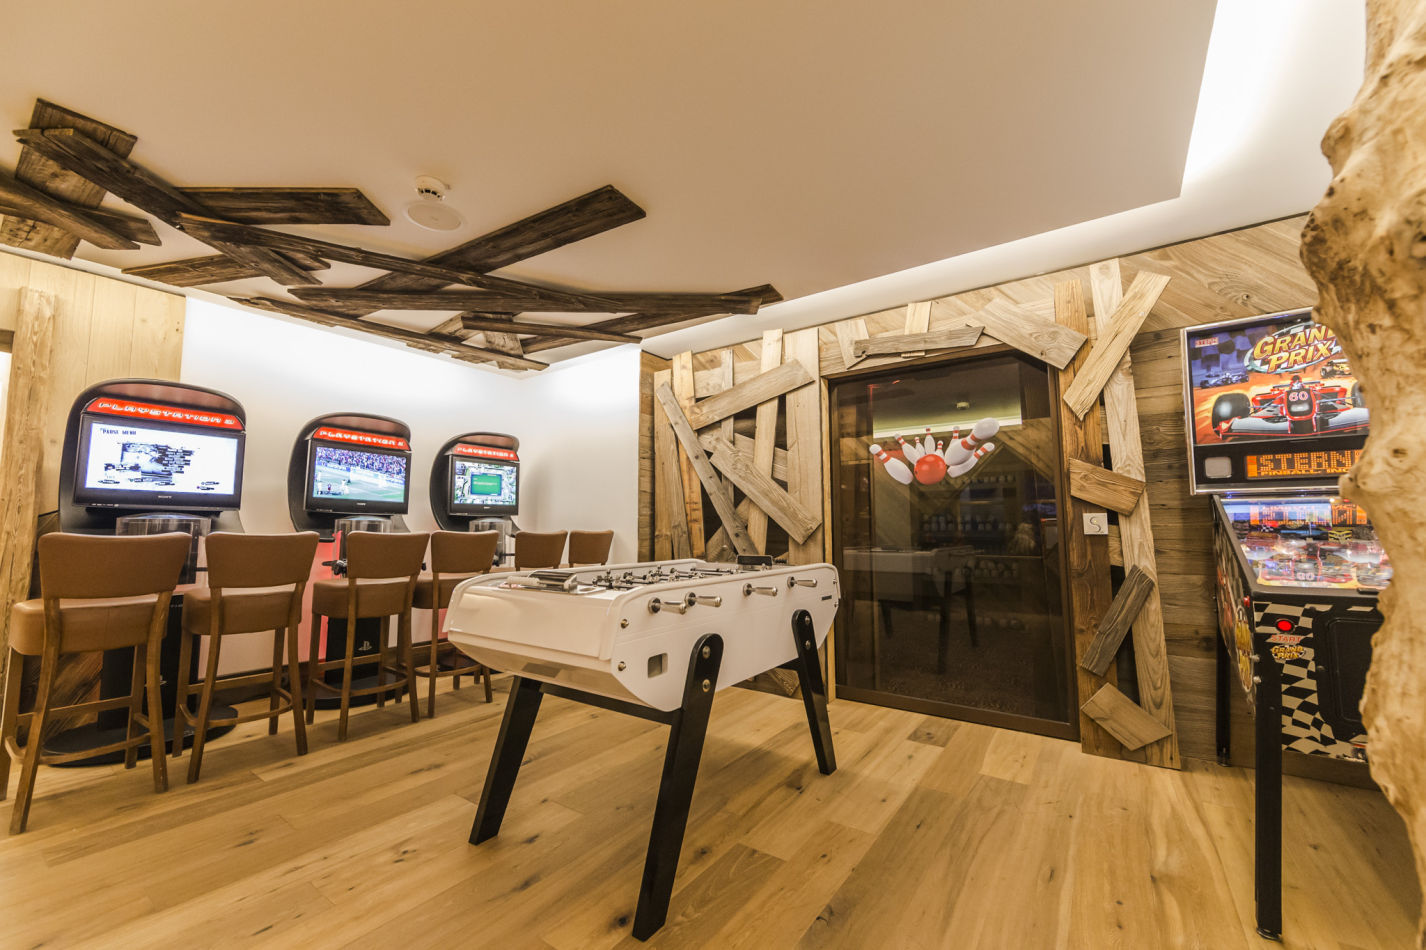 40-salle-de-jeux-videos-video-games-room